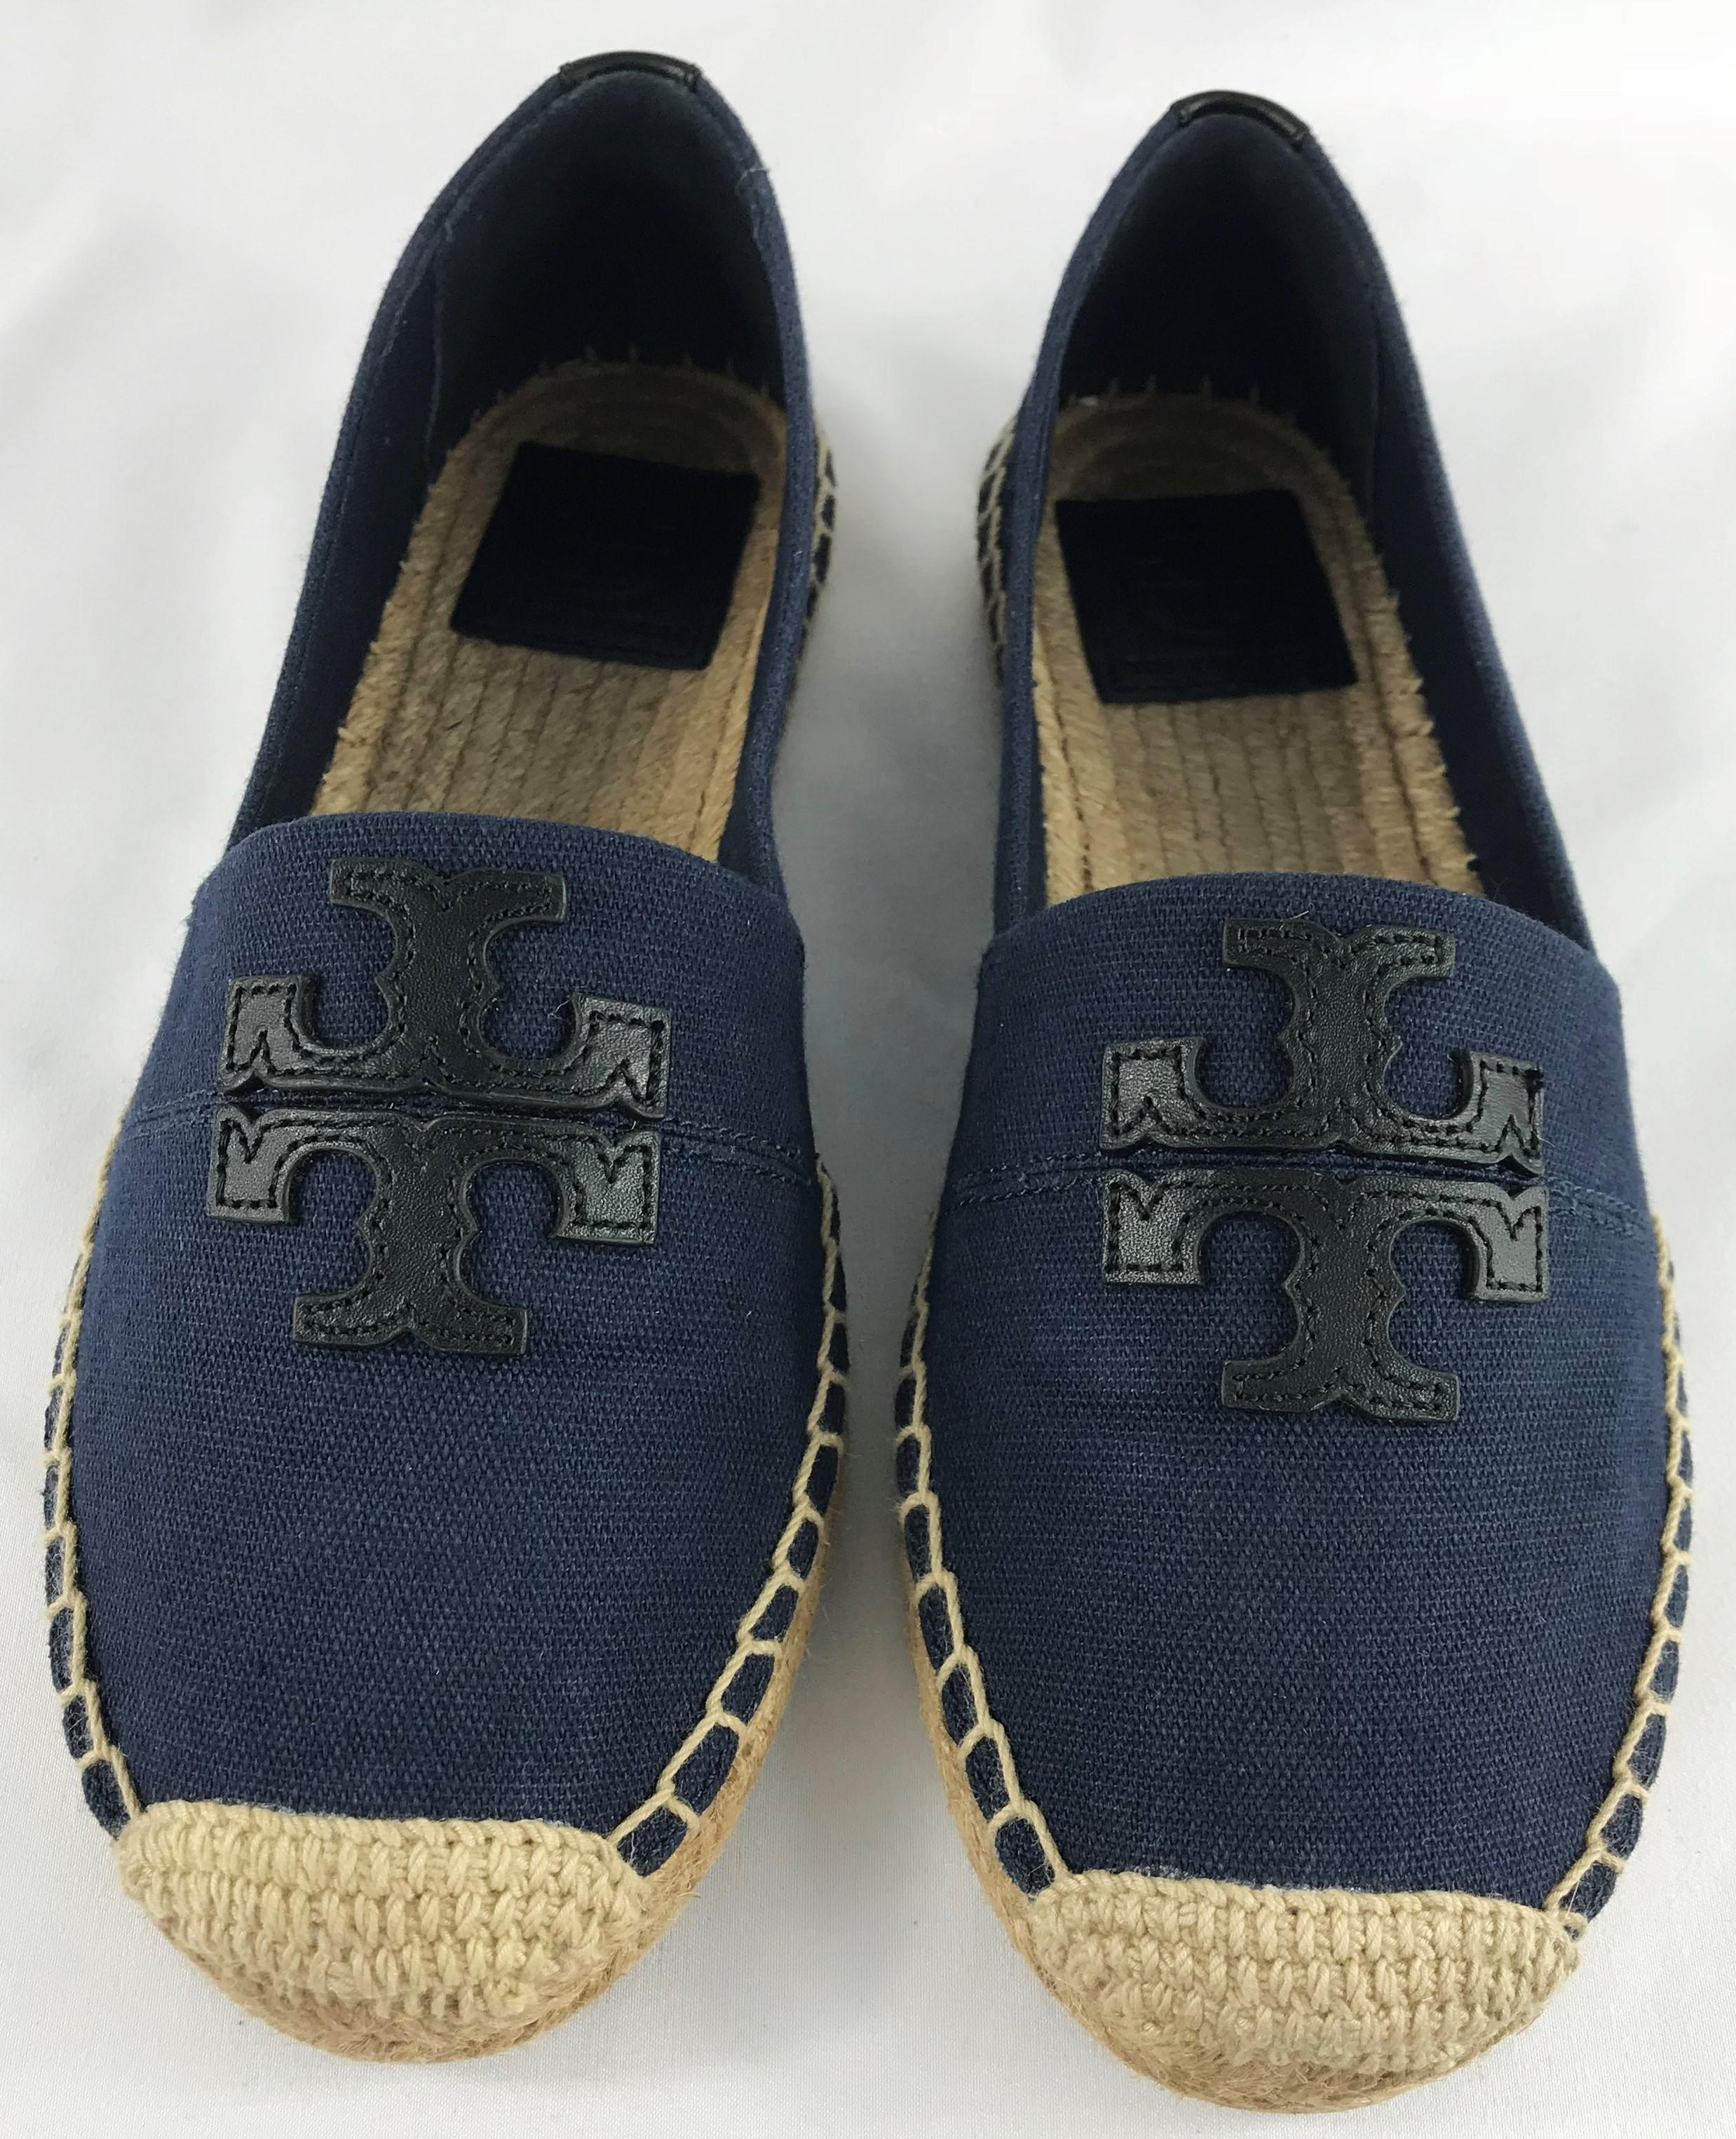 623a78a9291 Tory Burch Navy Black Weston Canvas Espadrilles Espadrilles ...